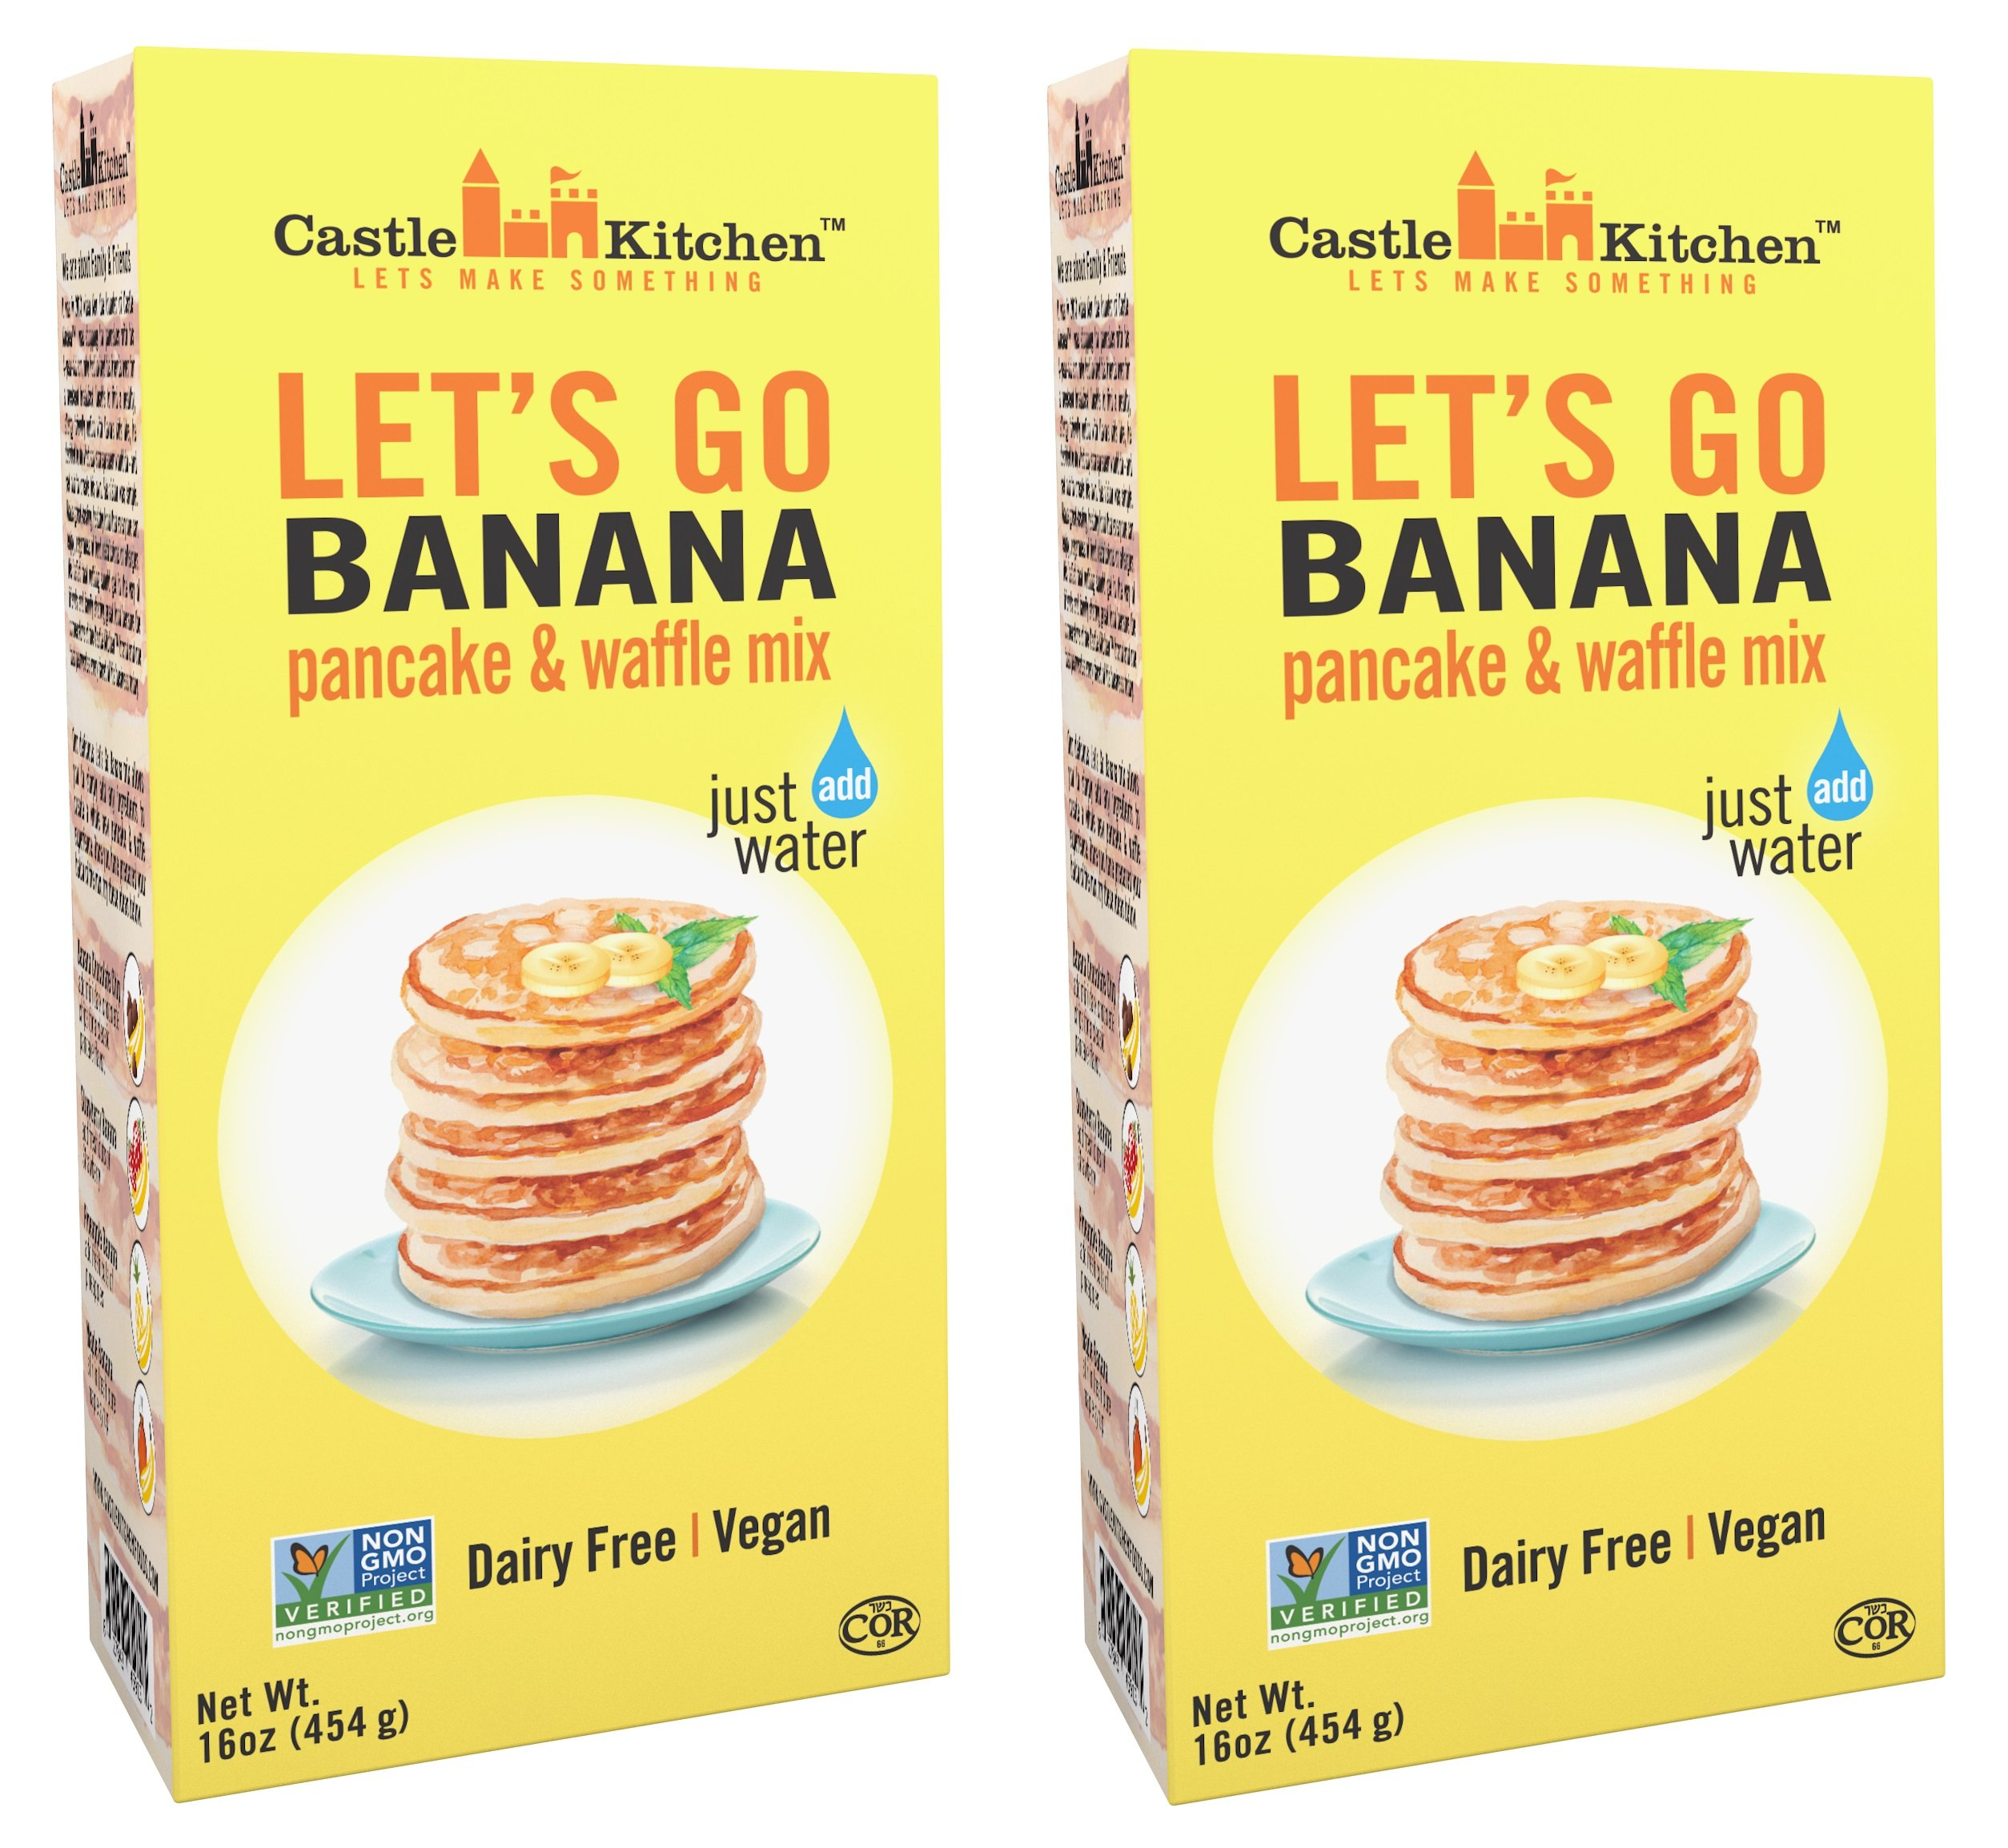 Banana Pancake Mix - Let's Go Banana Dairy-Free, Vegan Complete Pancake & Waffle Mix - Just Add Water - 16 oz (Pack of 2) by Castle Kitchen